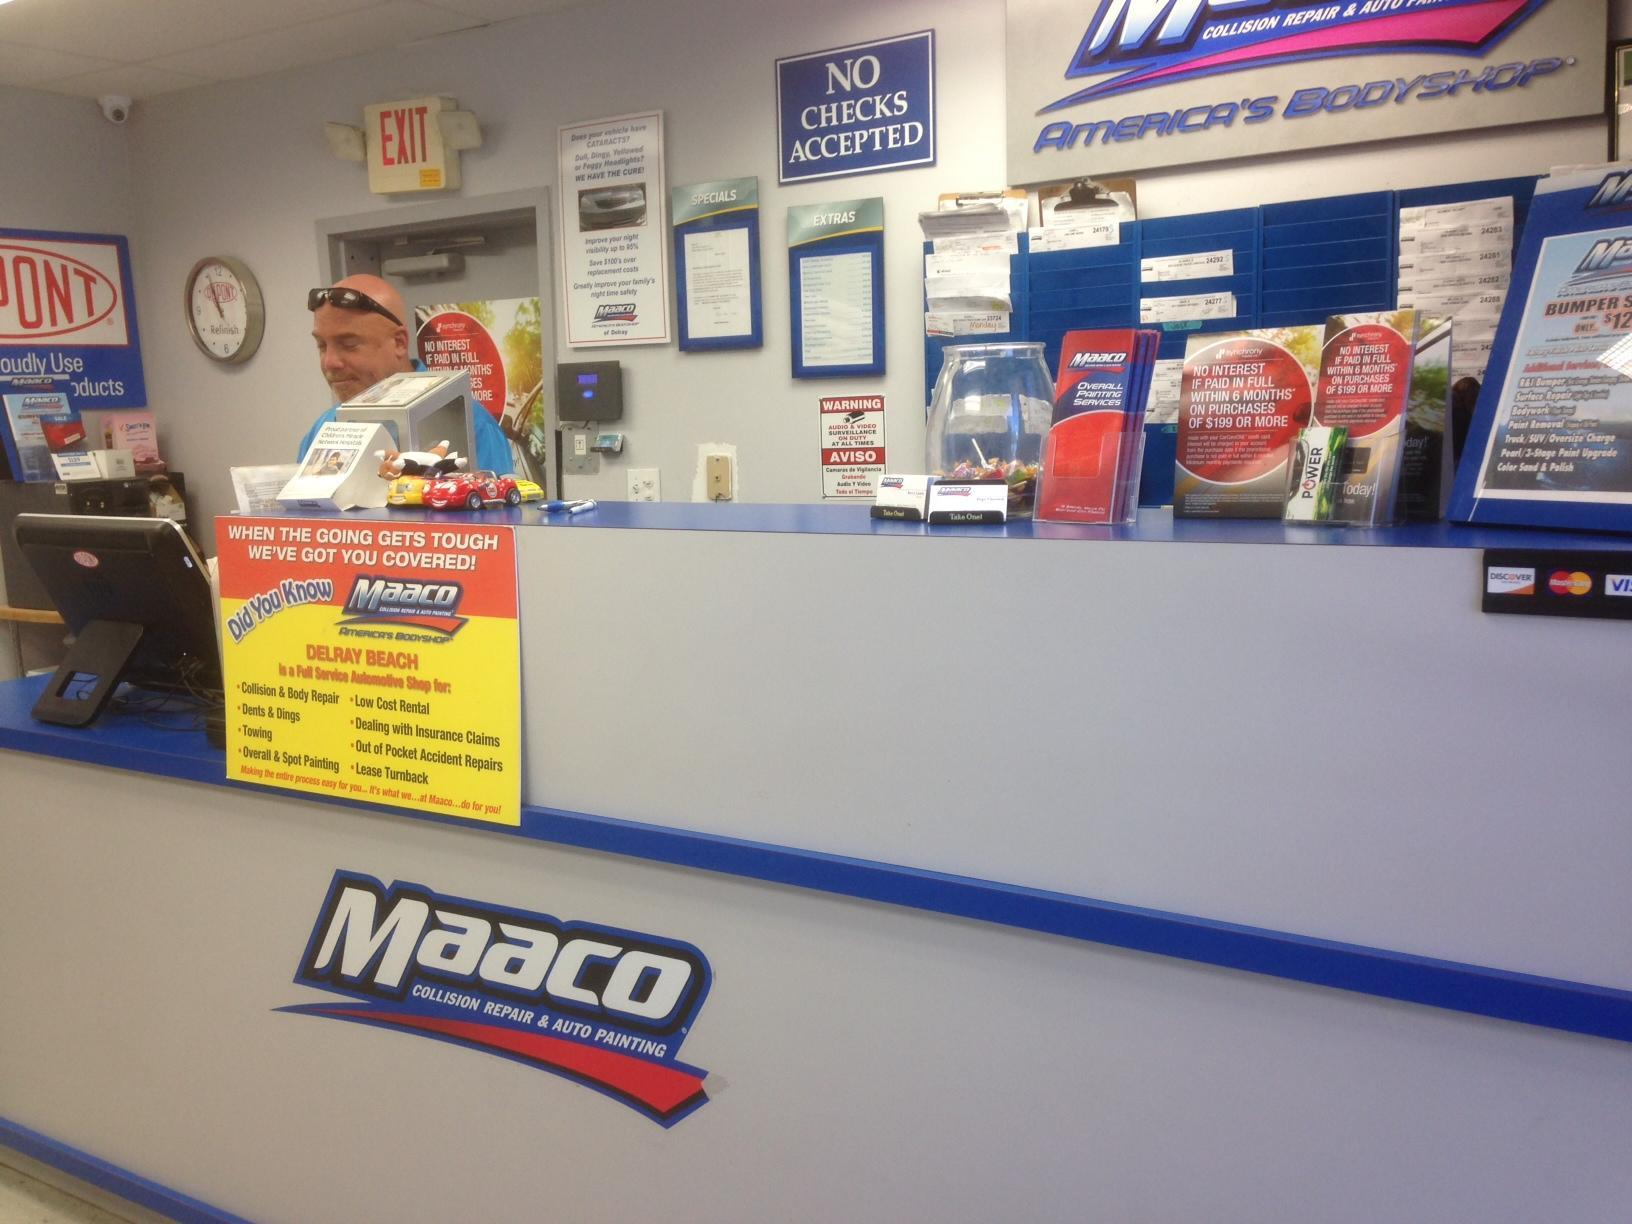 Maaco collision repair auto painting in delray beach fl for Maaco paint and body